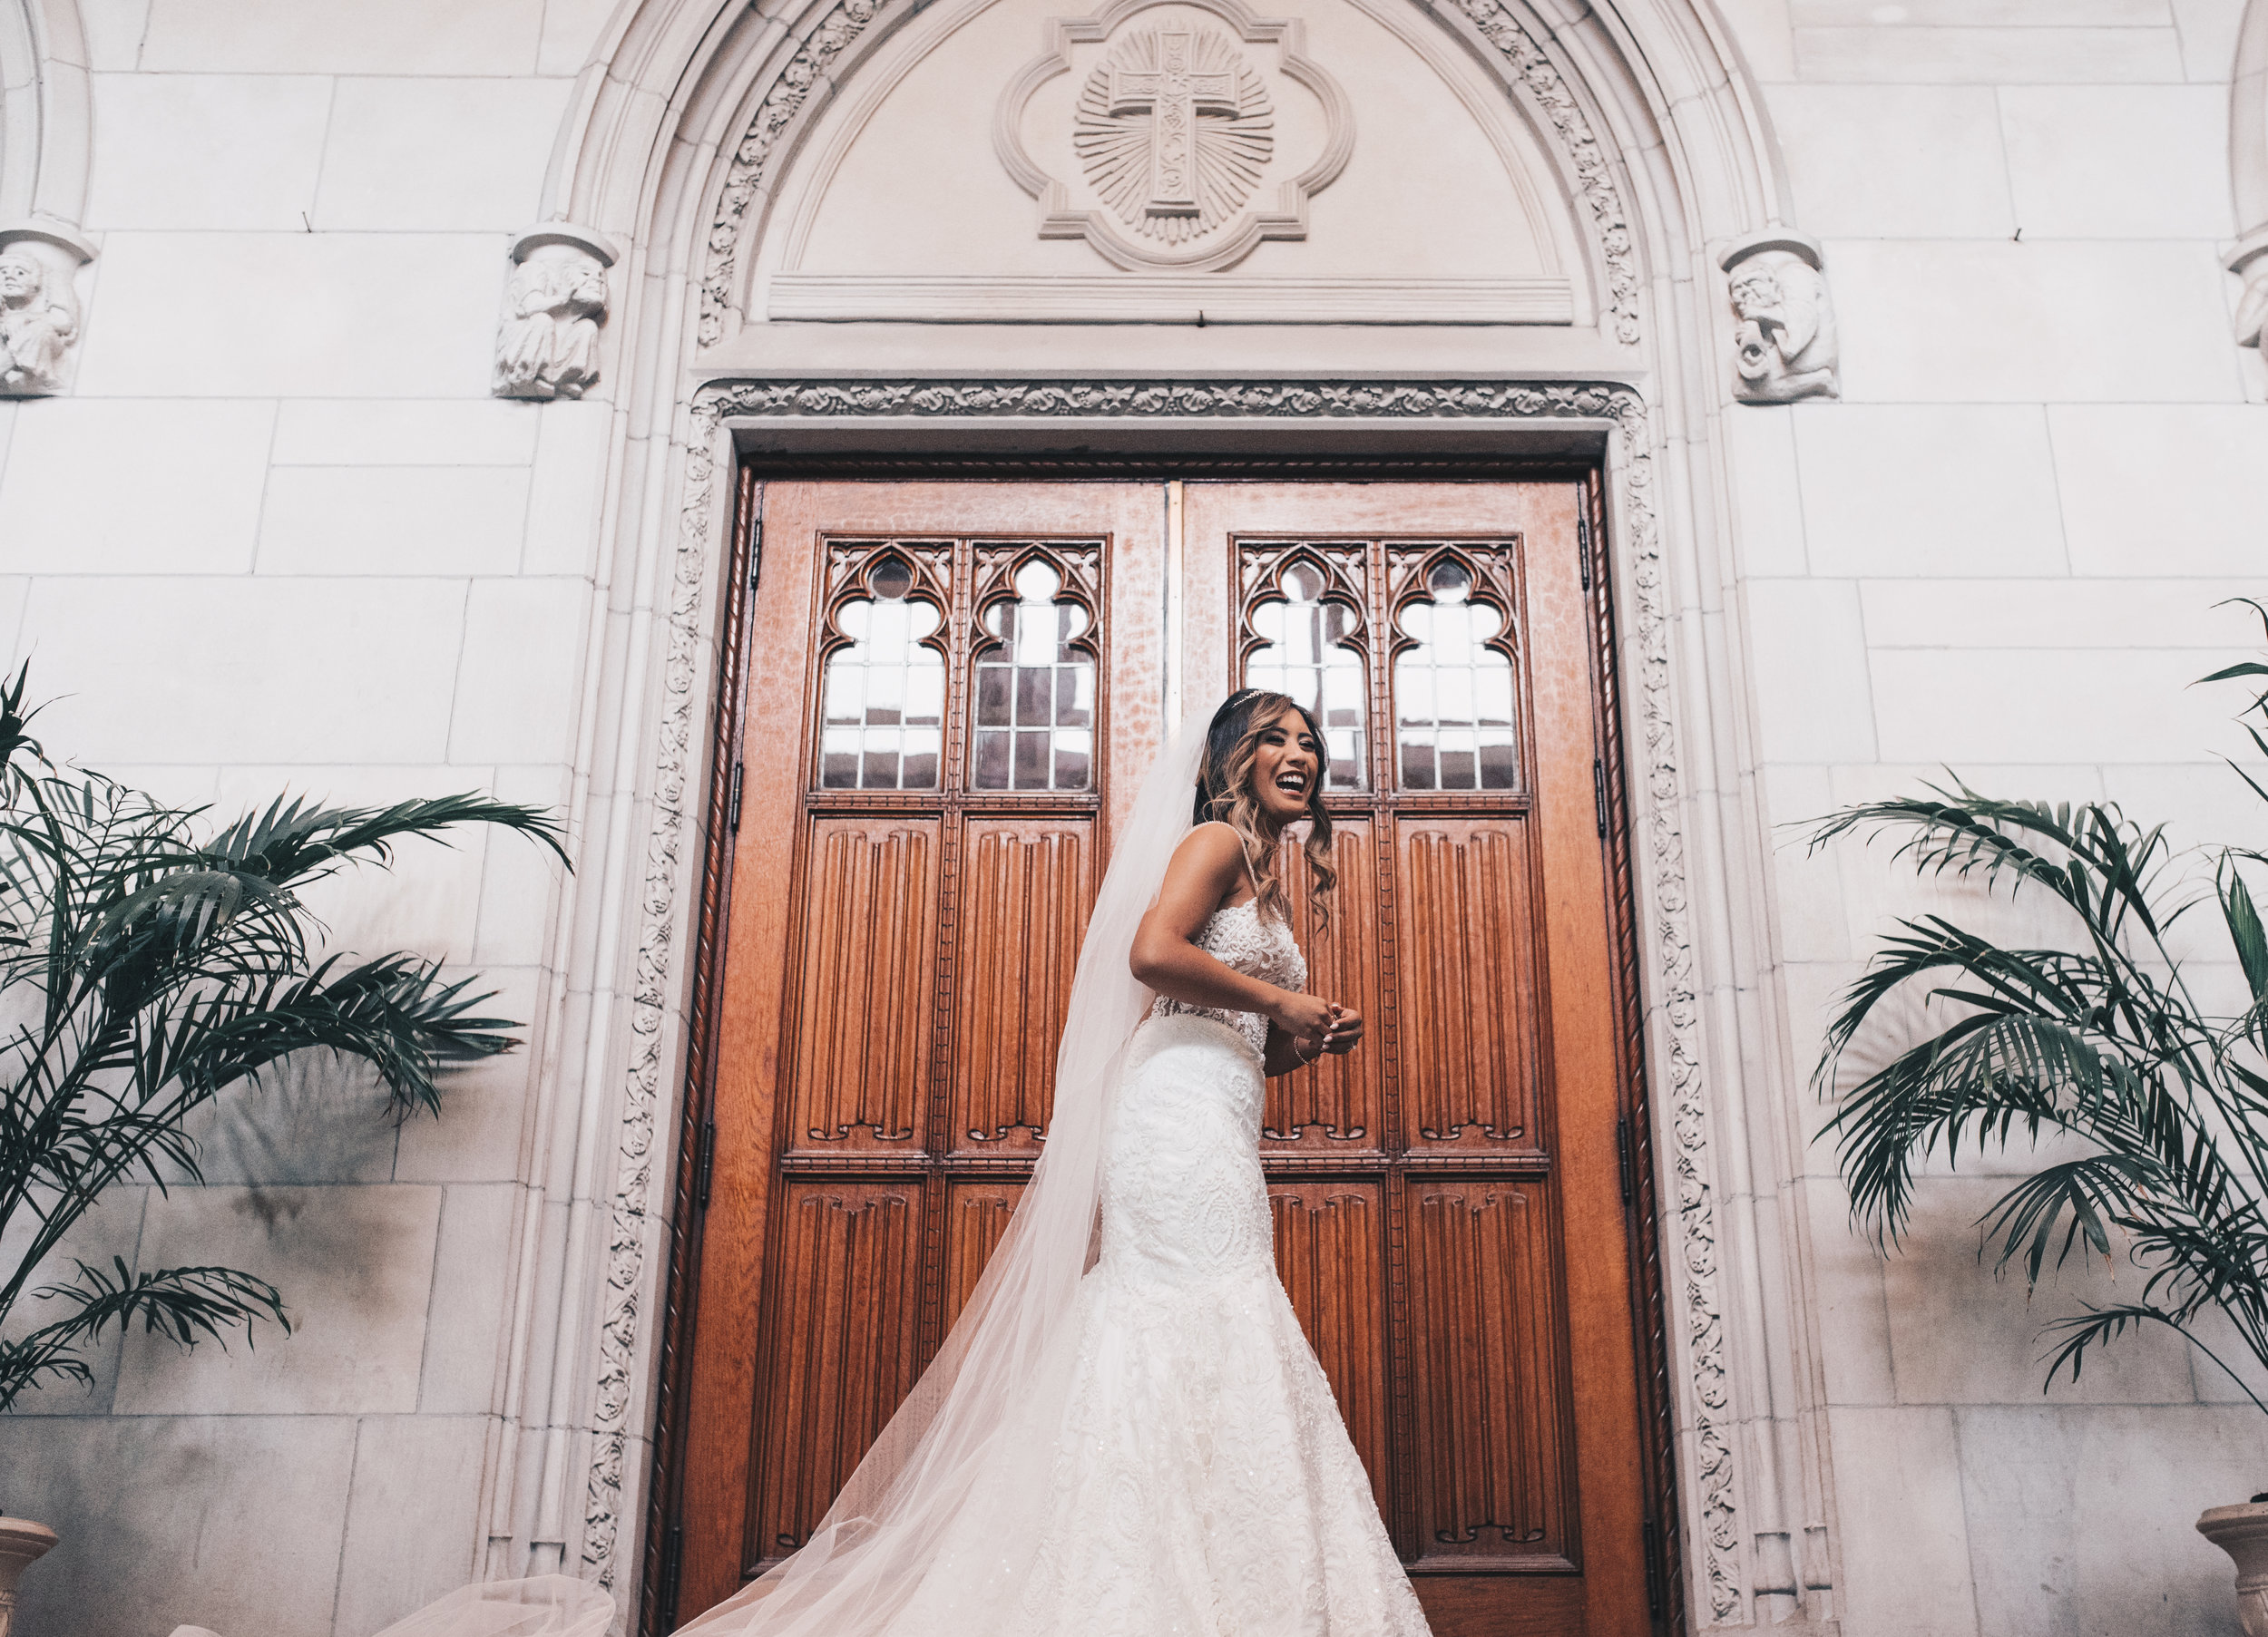 Chicago Bride and Groom Photos, Chicago Wedding, Chicago Wedding Photographer, Chicago Elopement Photographer, Bridal Wedding Photos